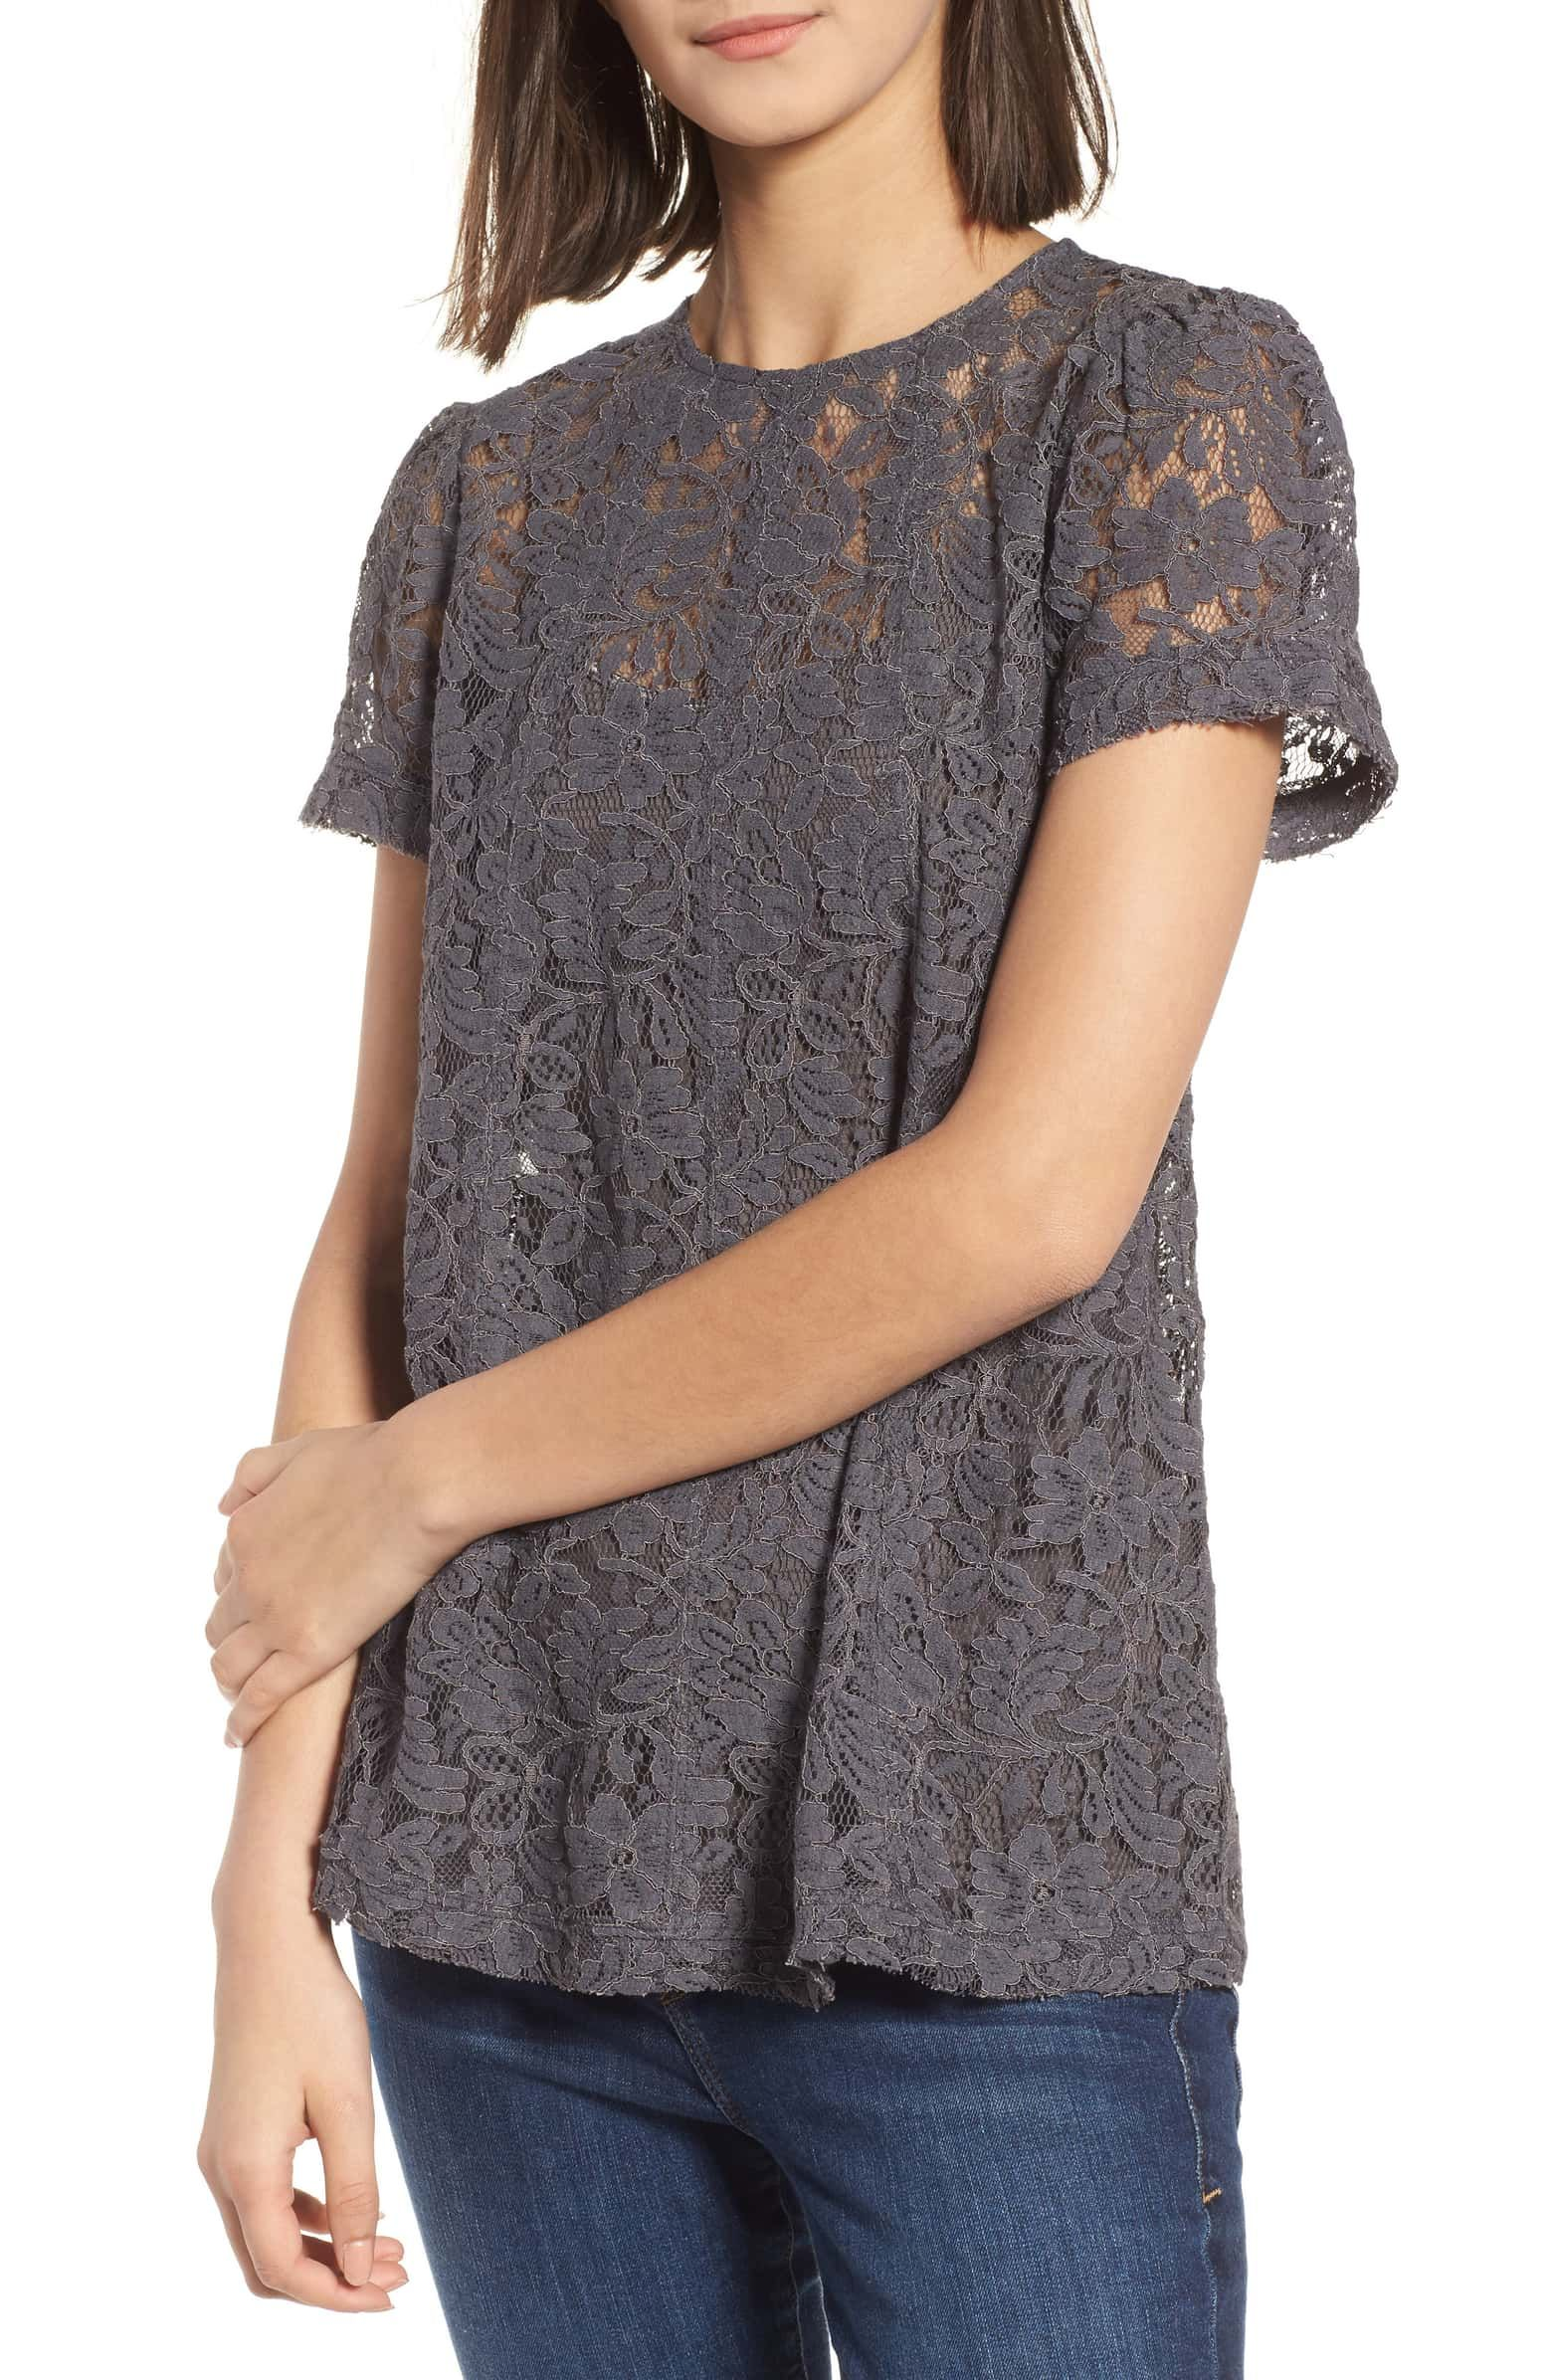 aeb652e8a406 Lace Top